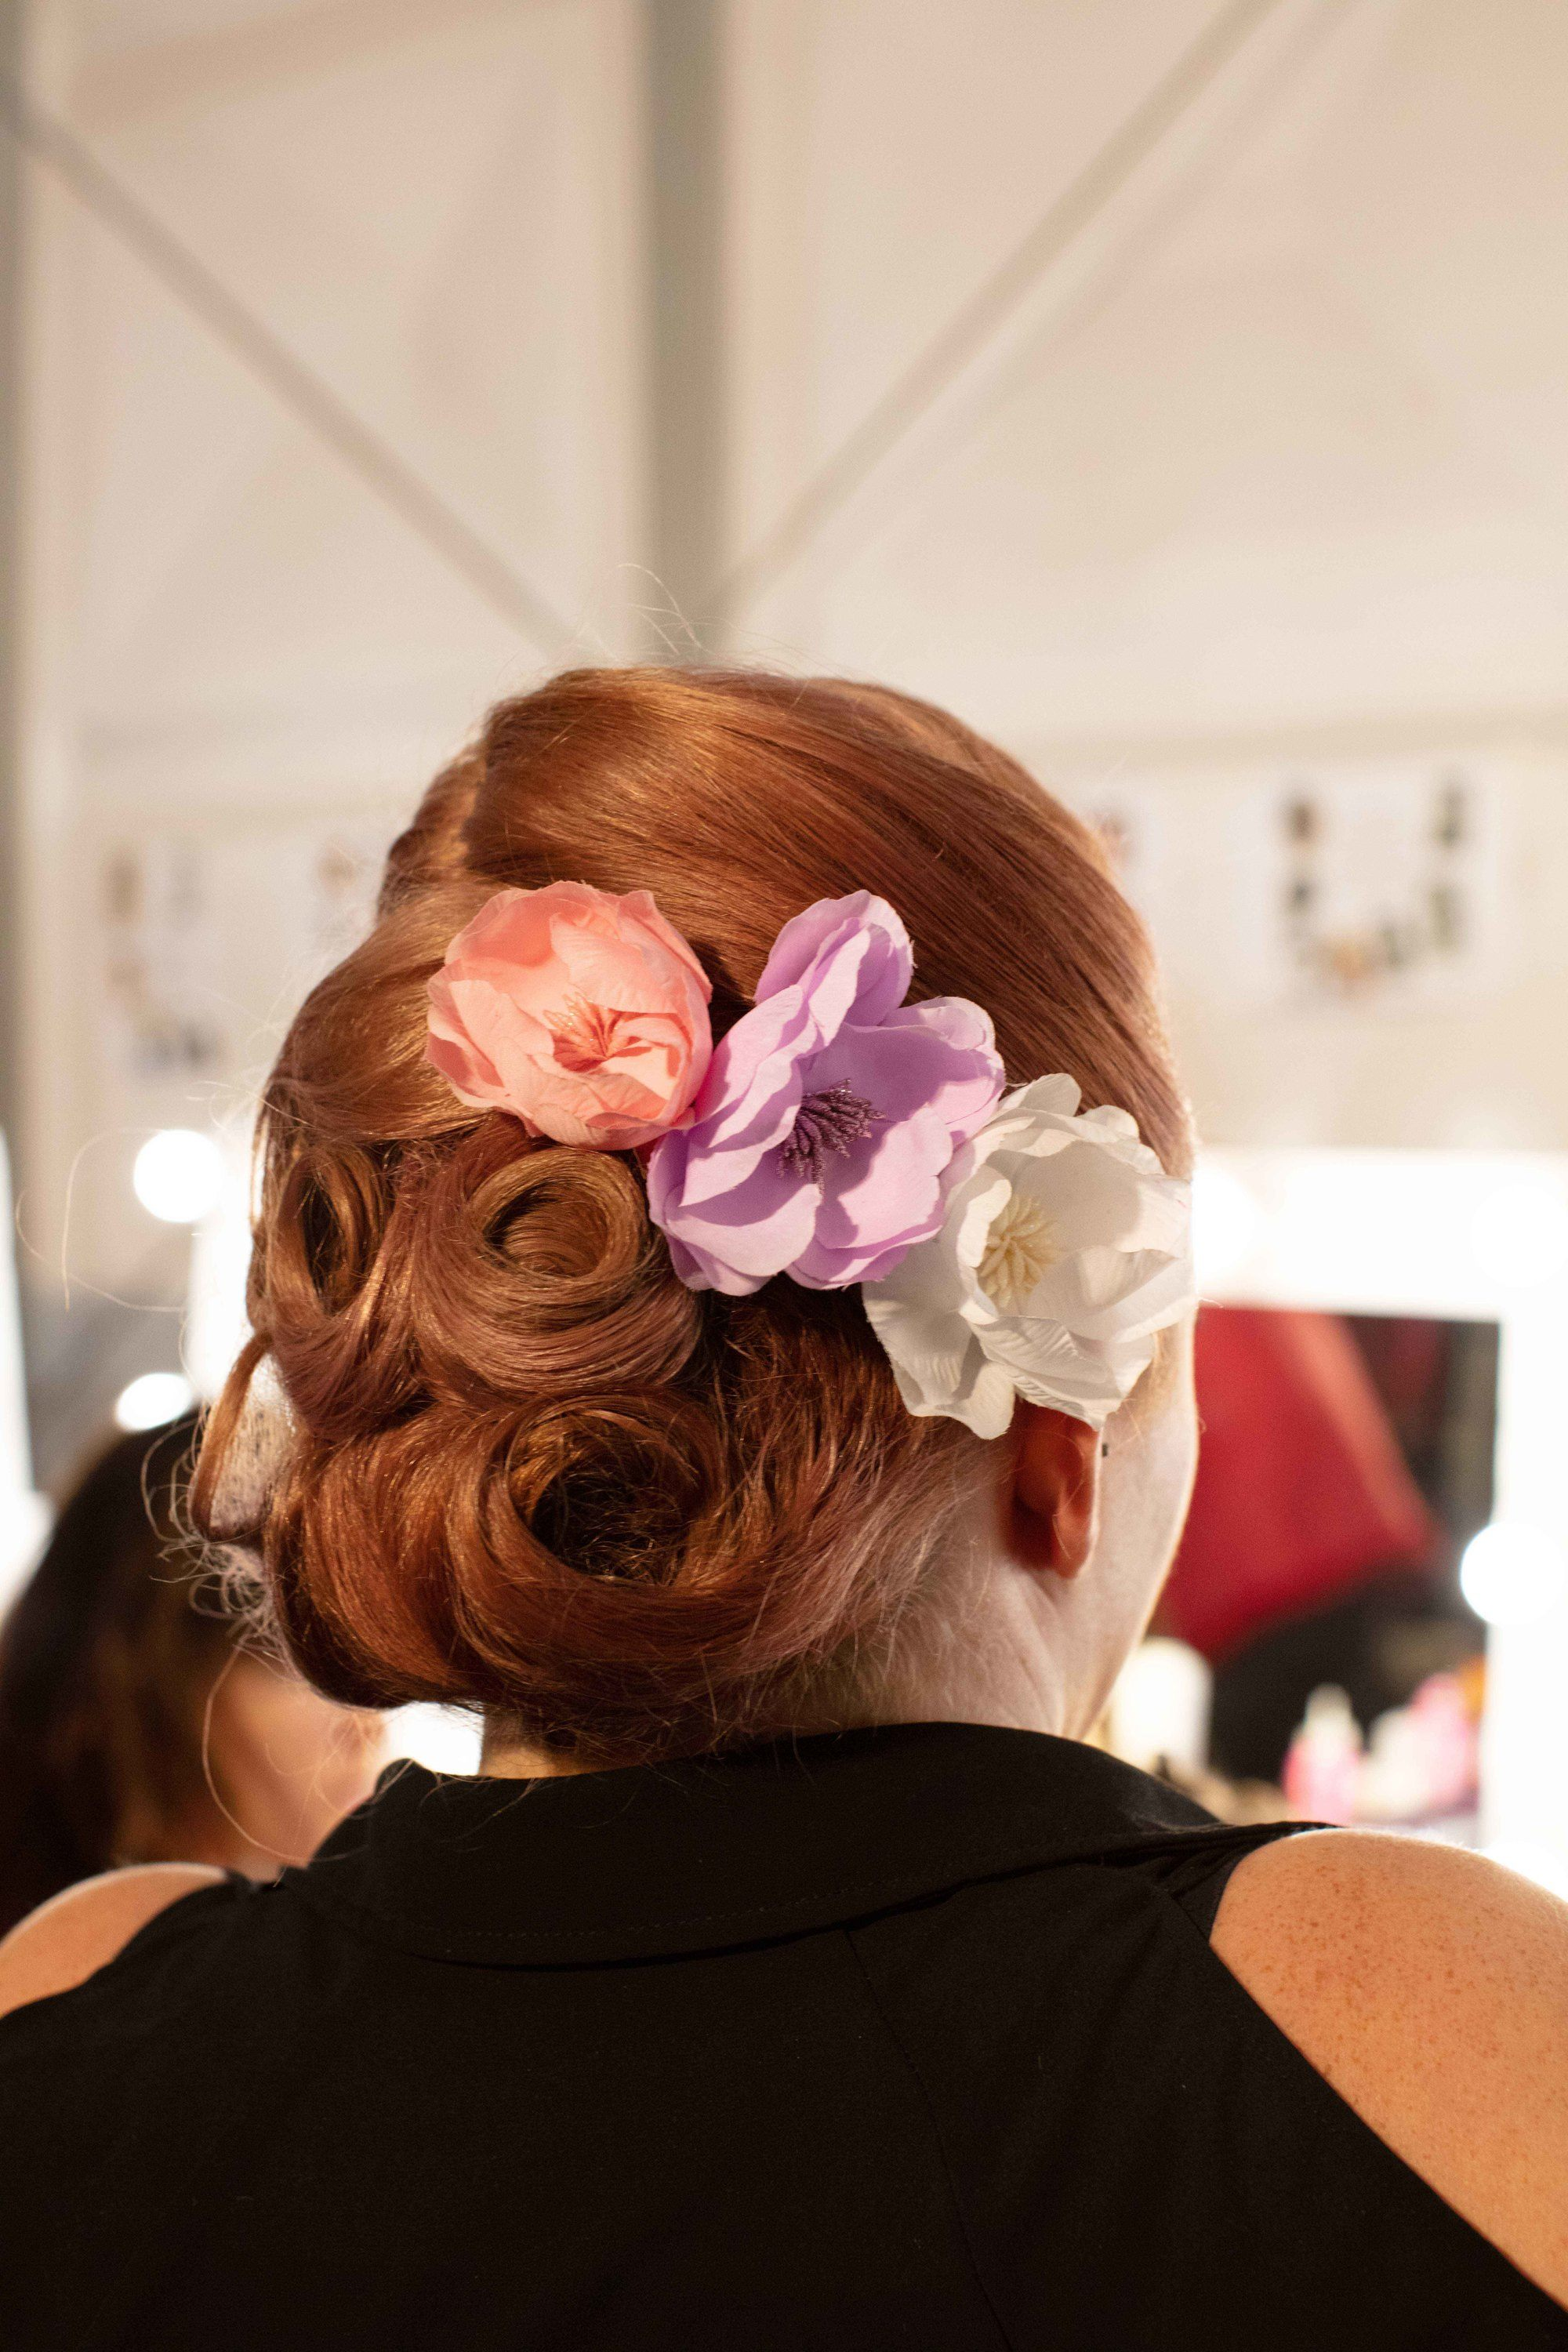 1940s hairstyles: Back shot of a woman ginger red hair styled into pin curled updo with flowers in it